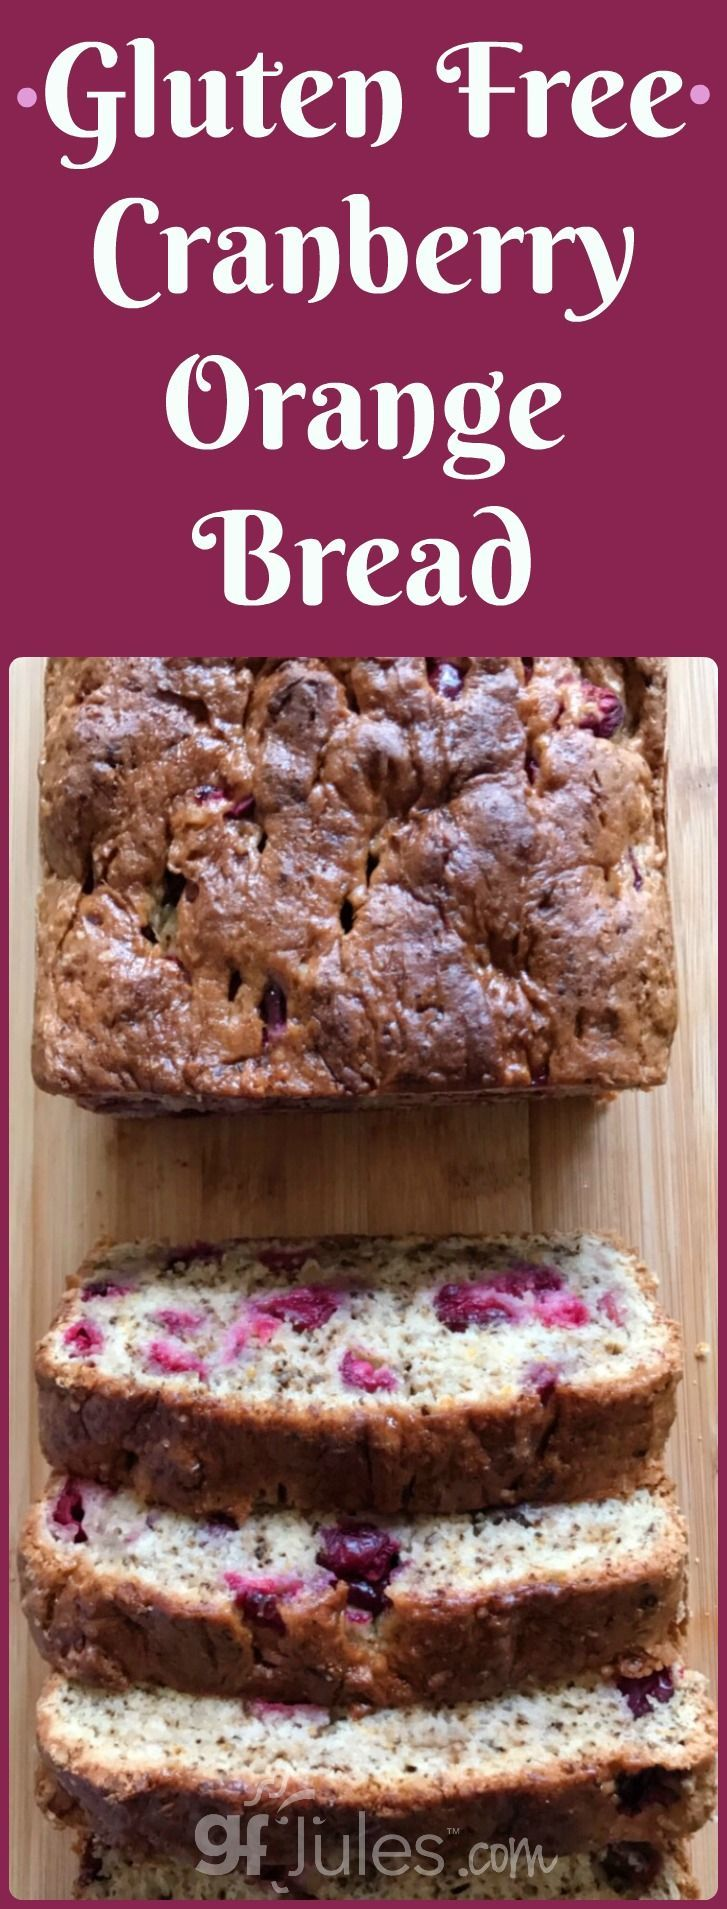 Gluten Free Cranberry Orange Quick Bread is the best of winter cranberries wrapped up in a moist and delicious quick bread everyone will adore! |gfJules.com